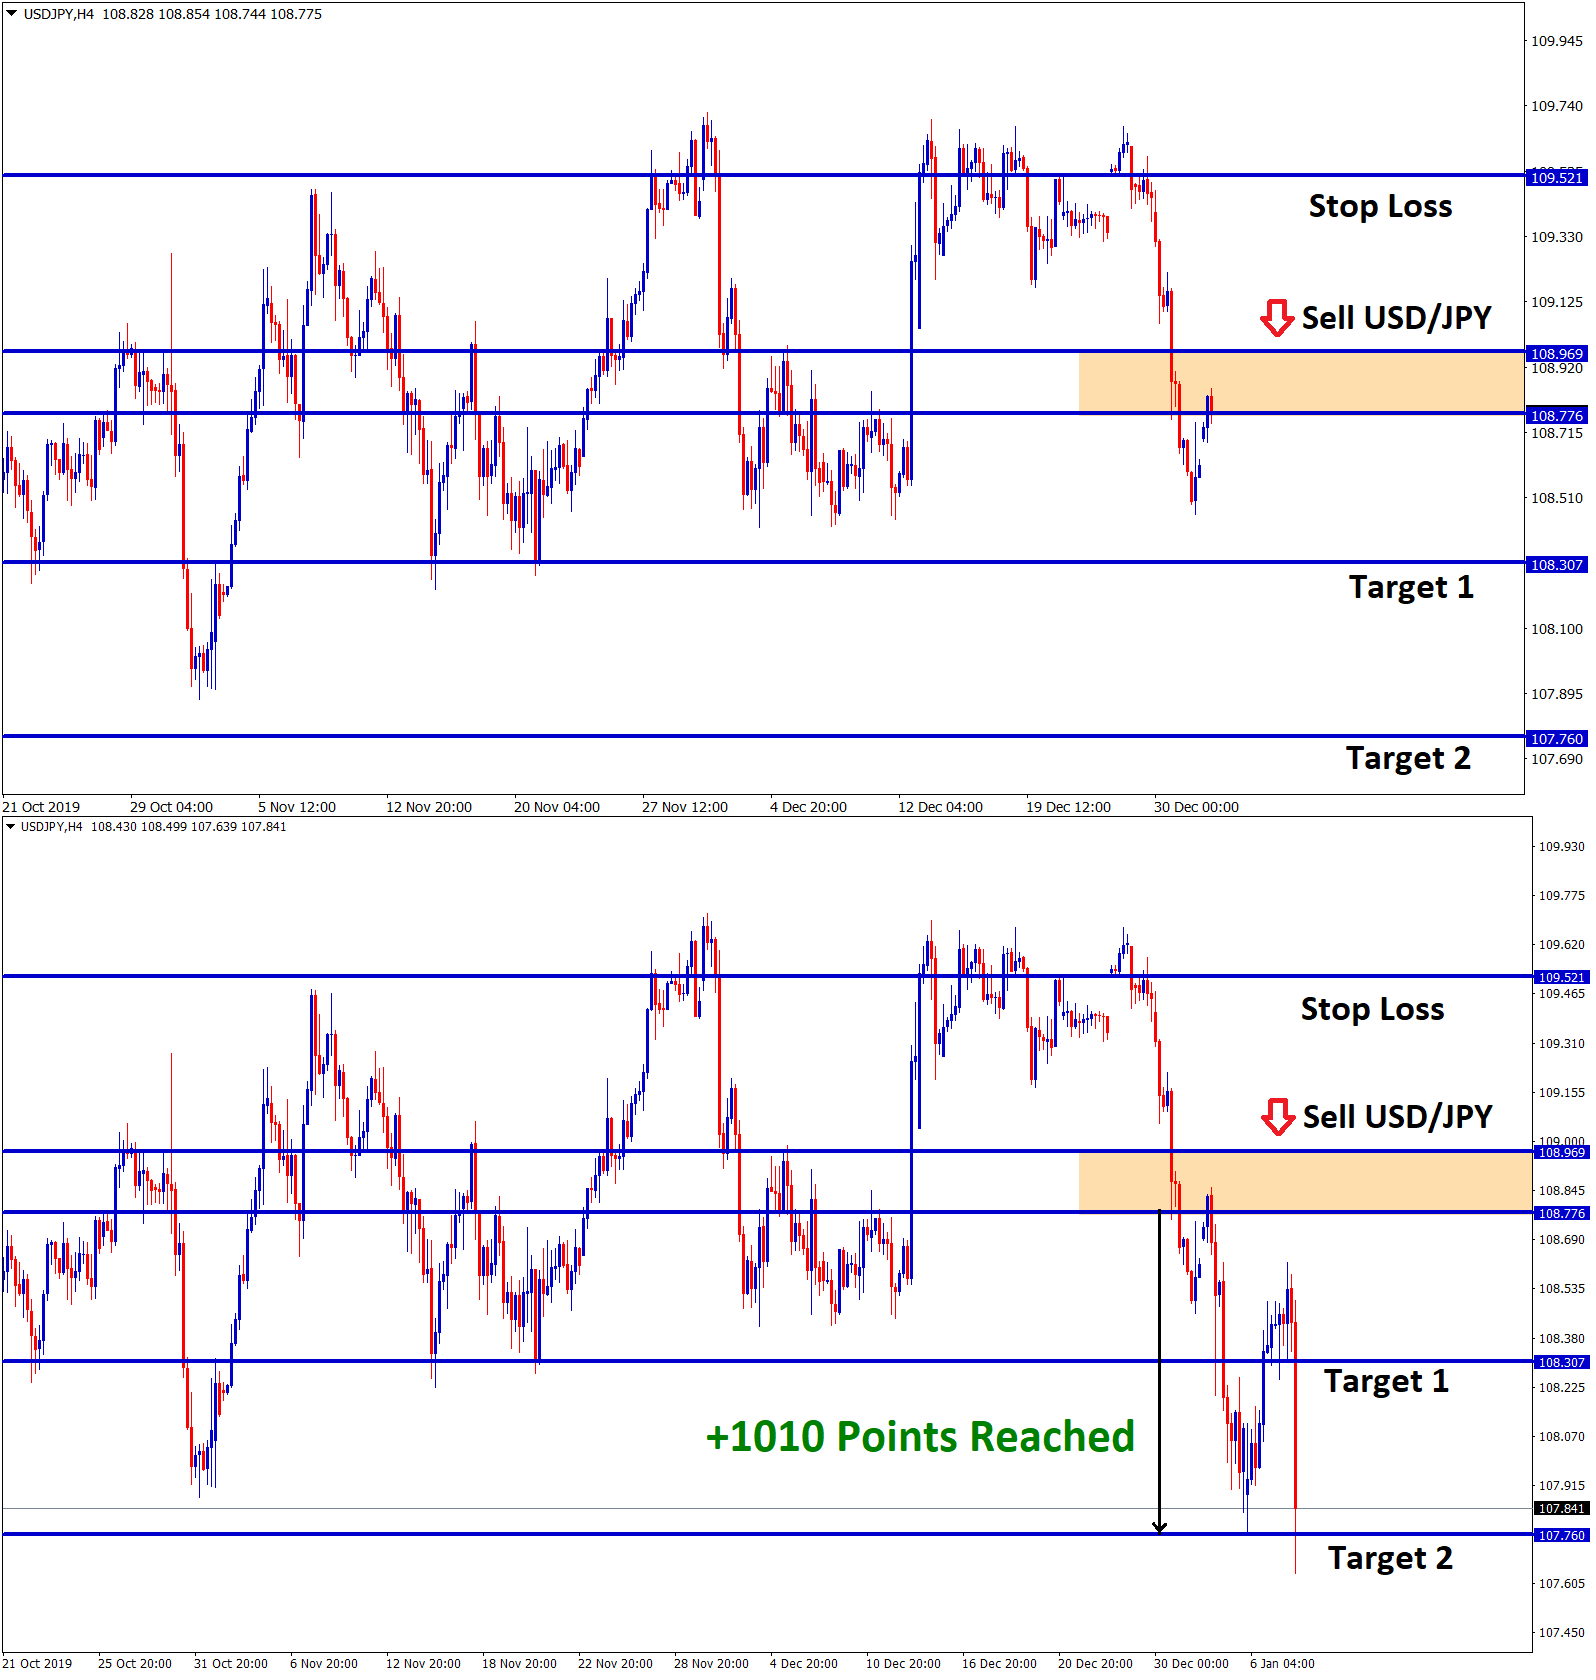 Forex GDP hits take profit in usd jpy sell signal